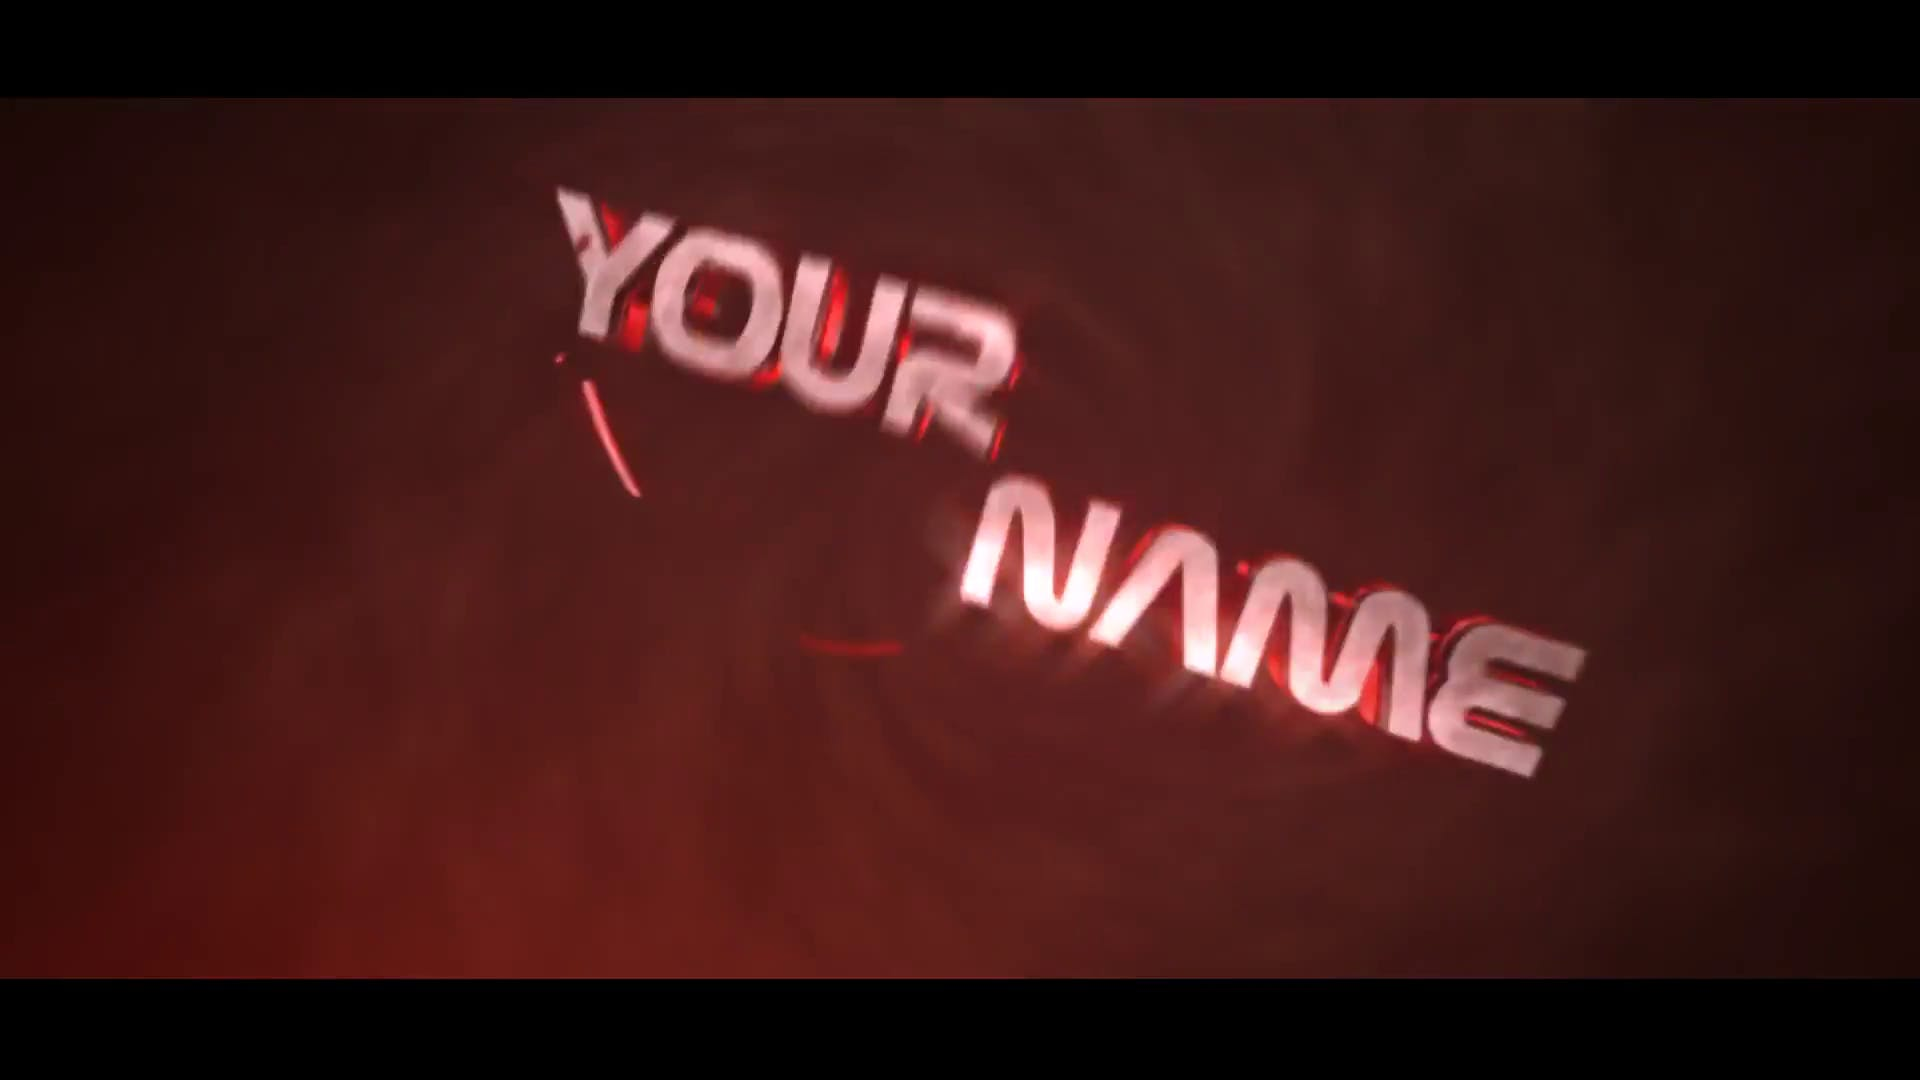 FREE Seriously Awesome 3D Cinema 4D After Effects Intro Template